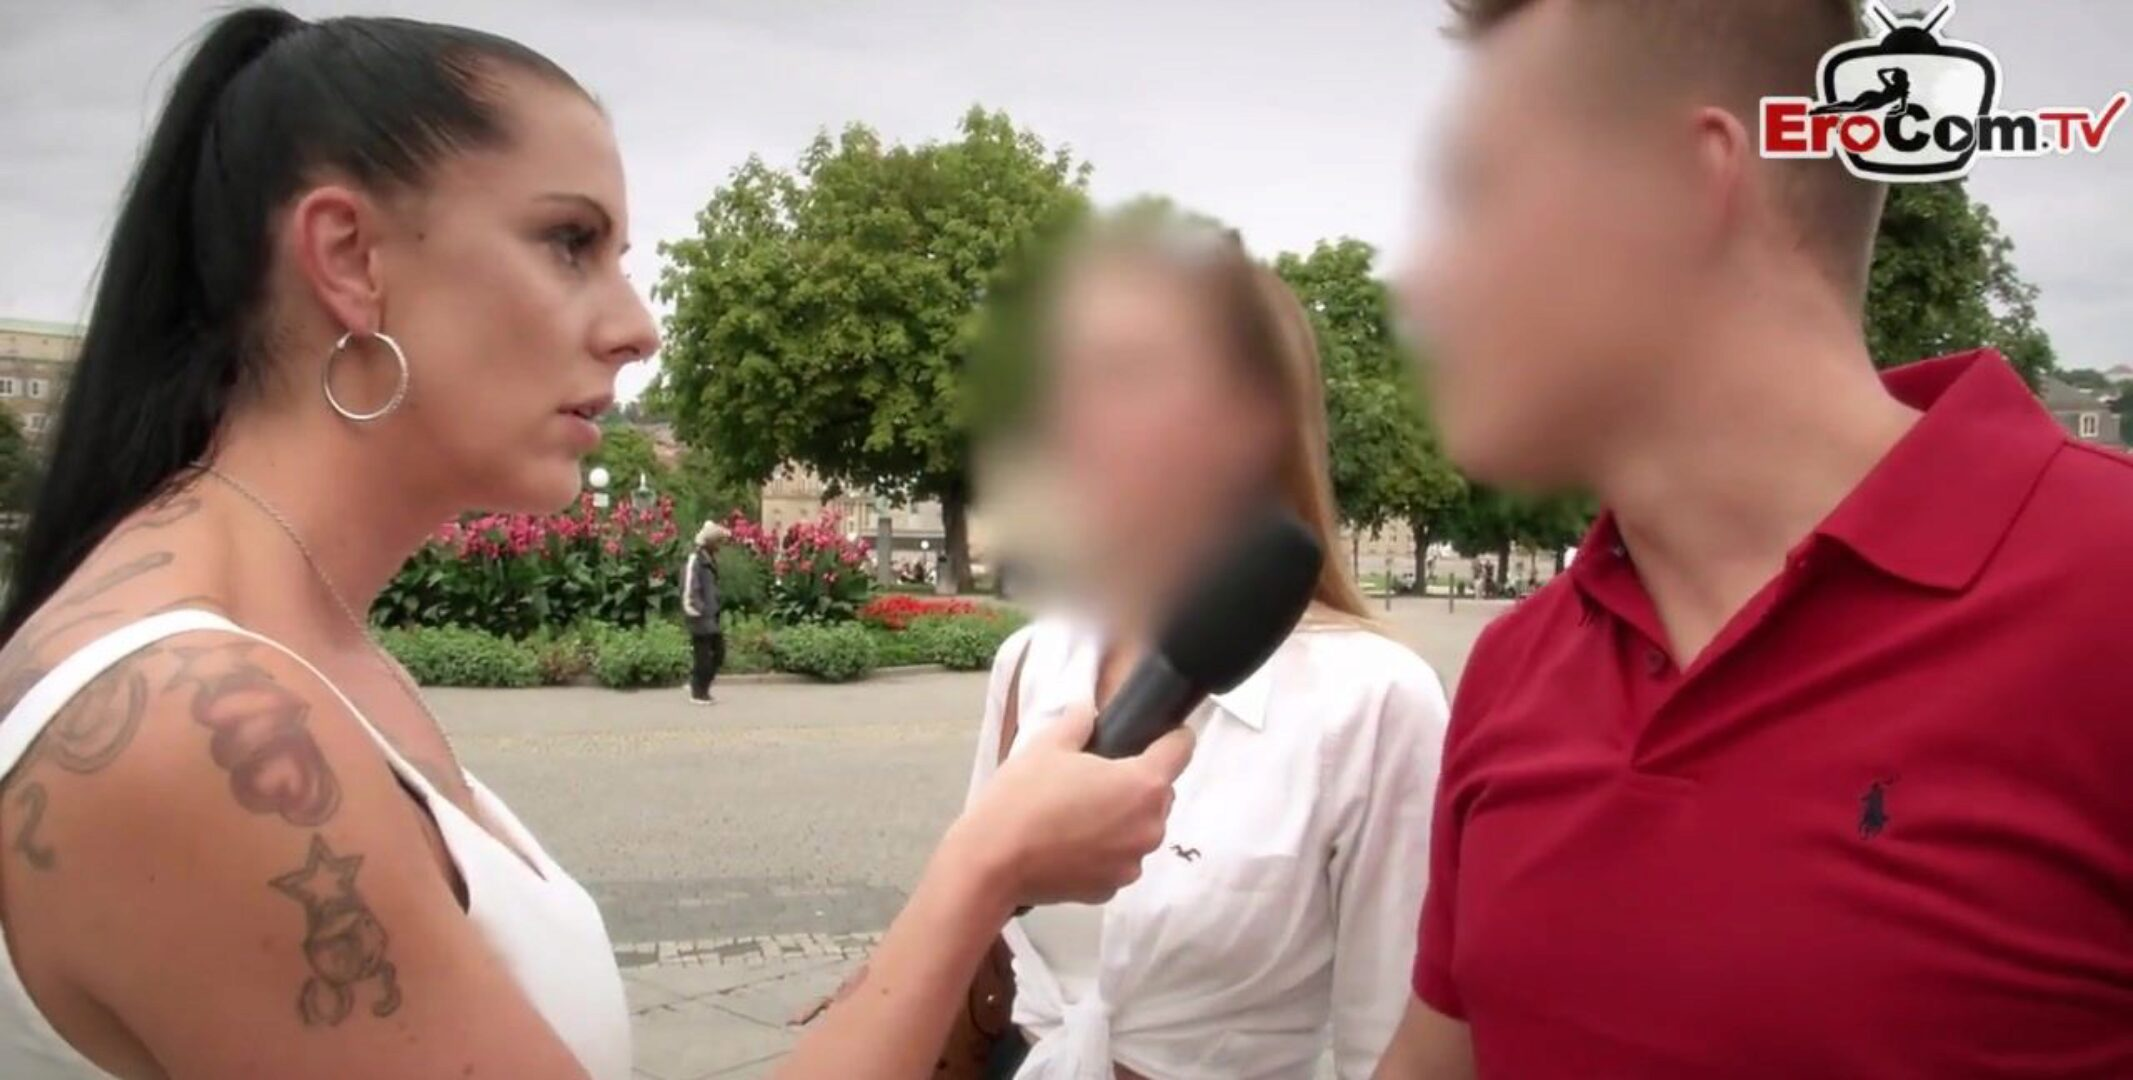 Deutsches Sex Casting Umfrage for outdoor anal invasion - german street pair